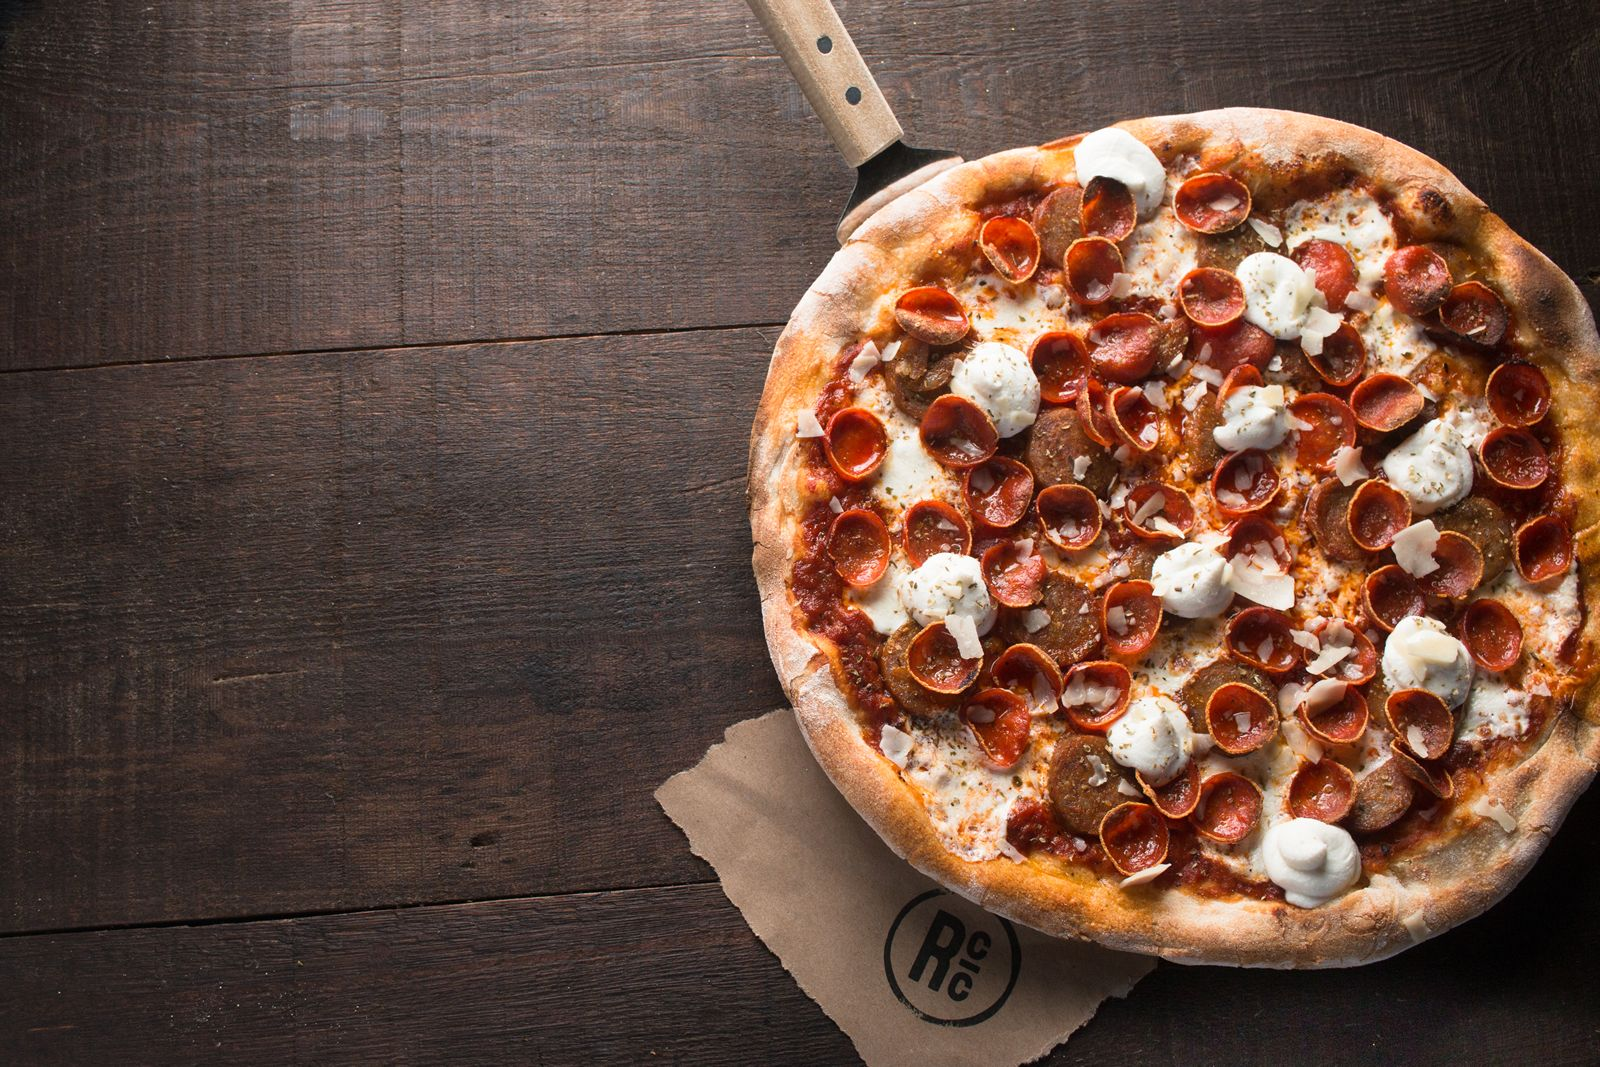 Rotolo's Craft & Crust Hosts Official Grand Opening Celebration of First Texas Restaurant in Frisco